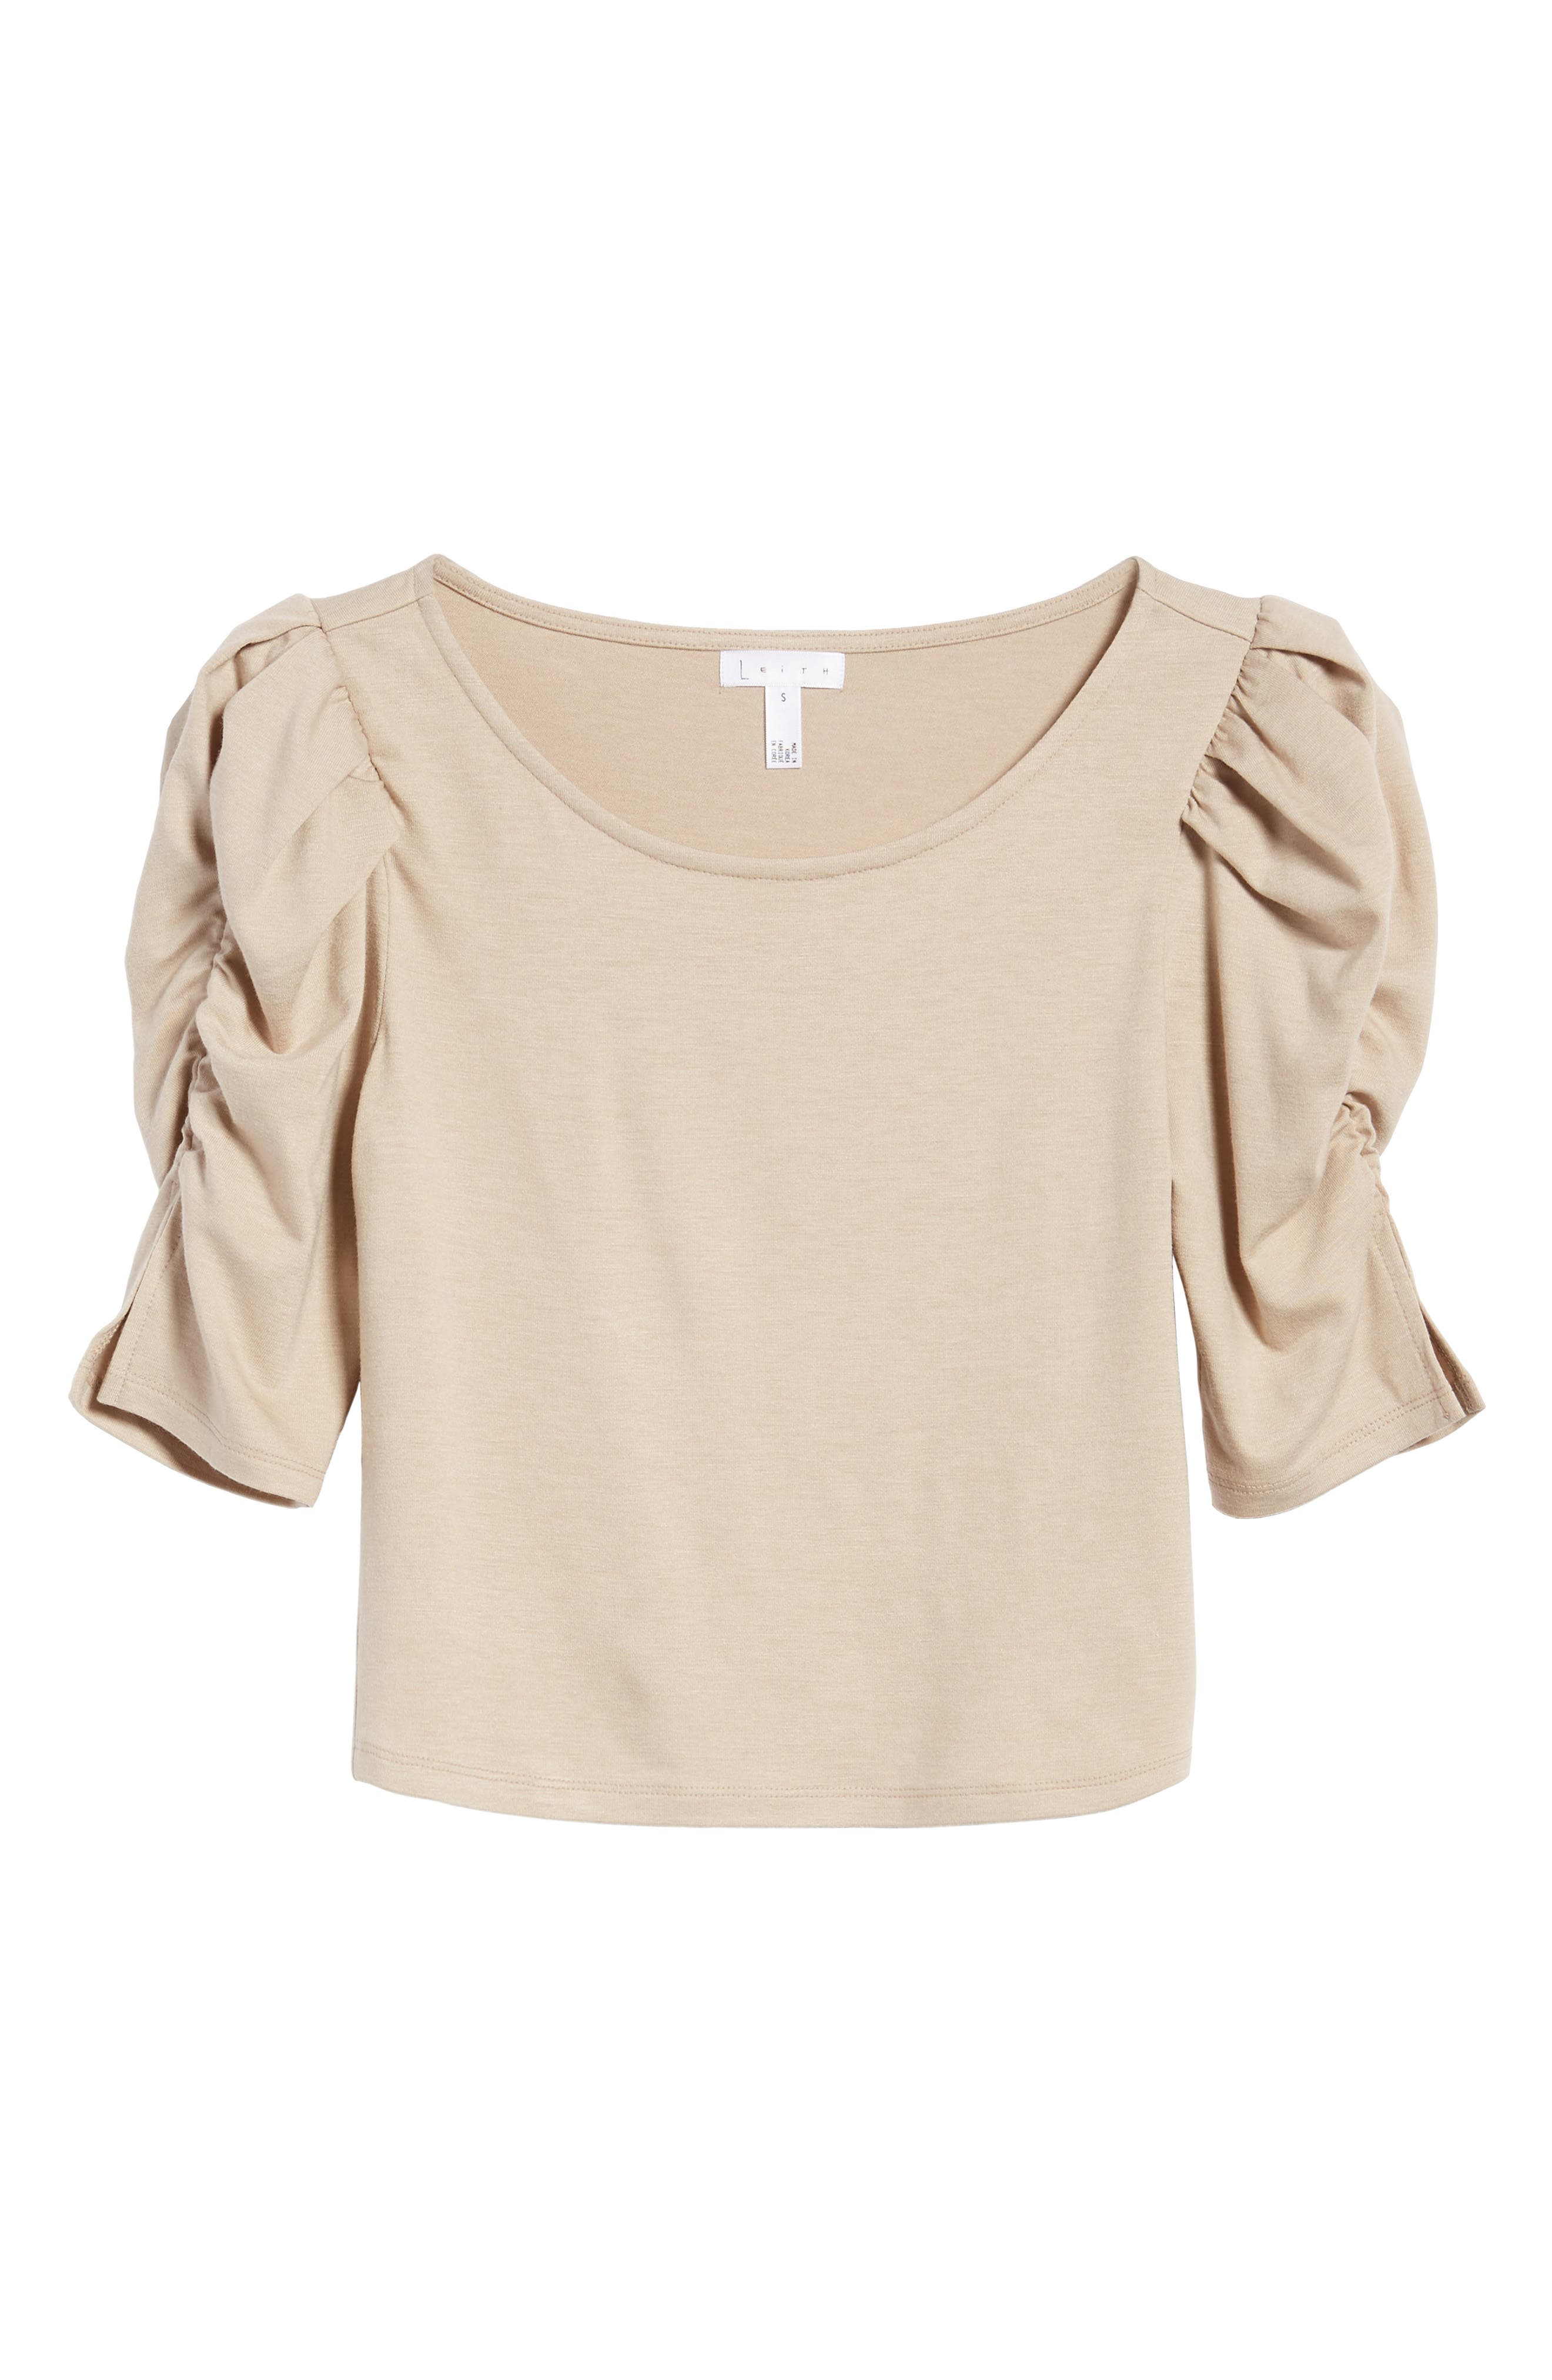 Puff Sleeve Top,                             Alternate thumbnail 6, color,                             Beige Oatmeal